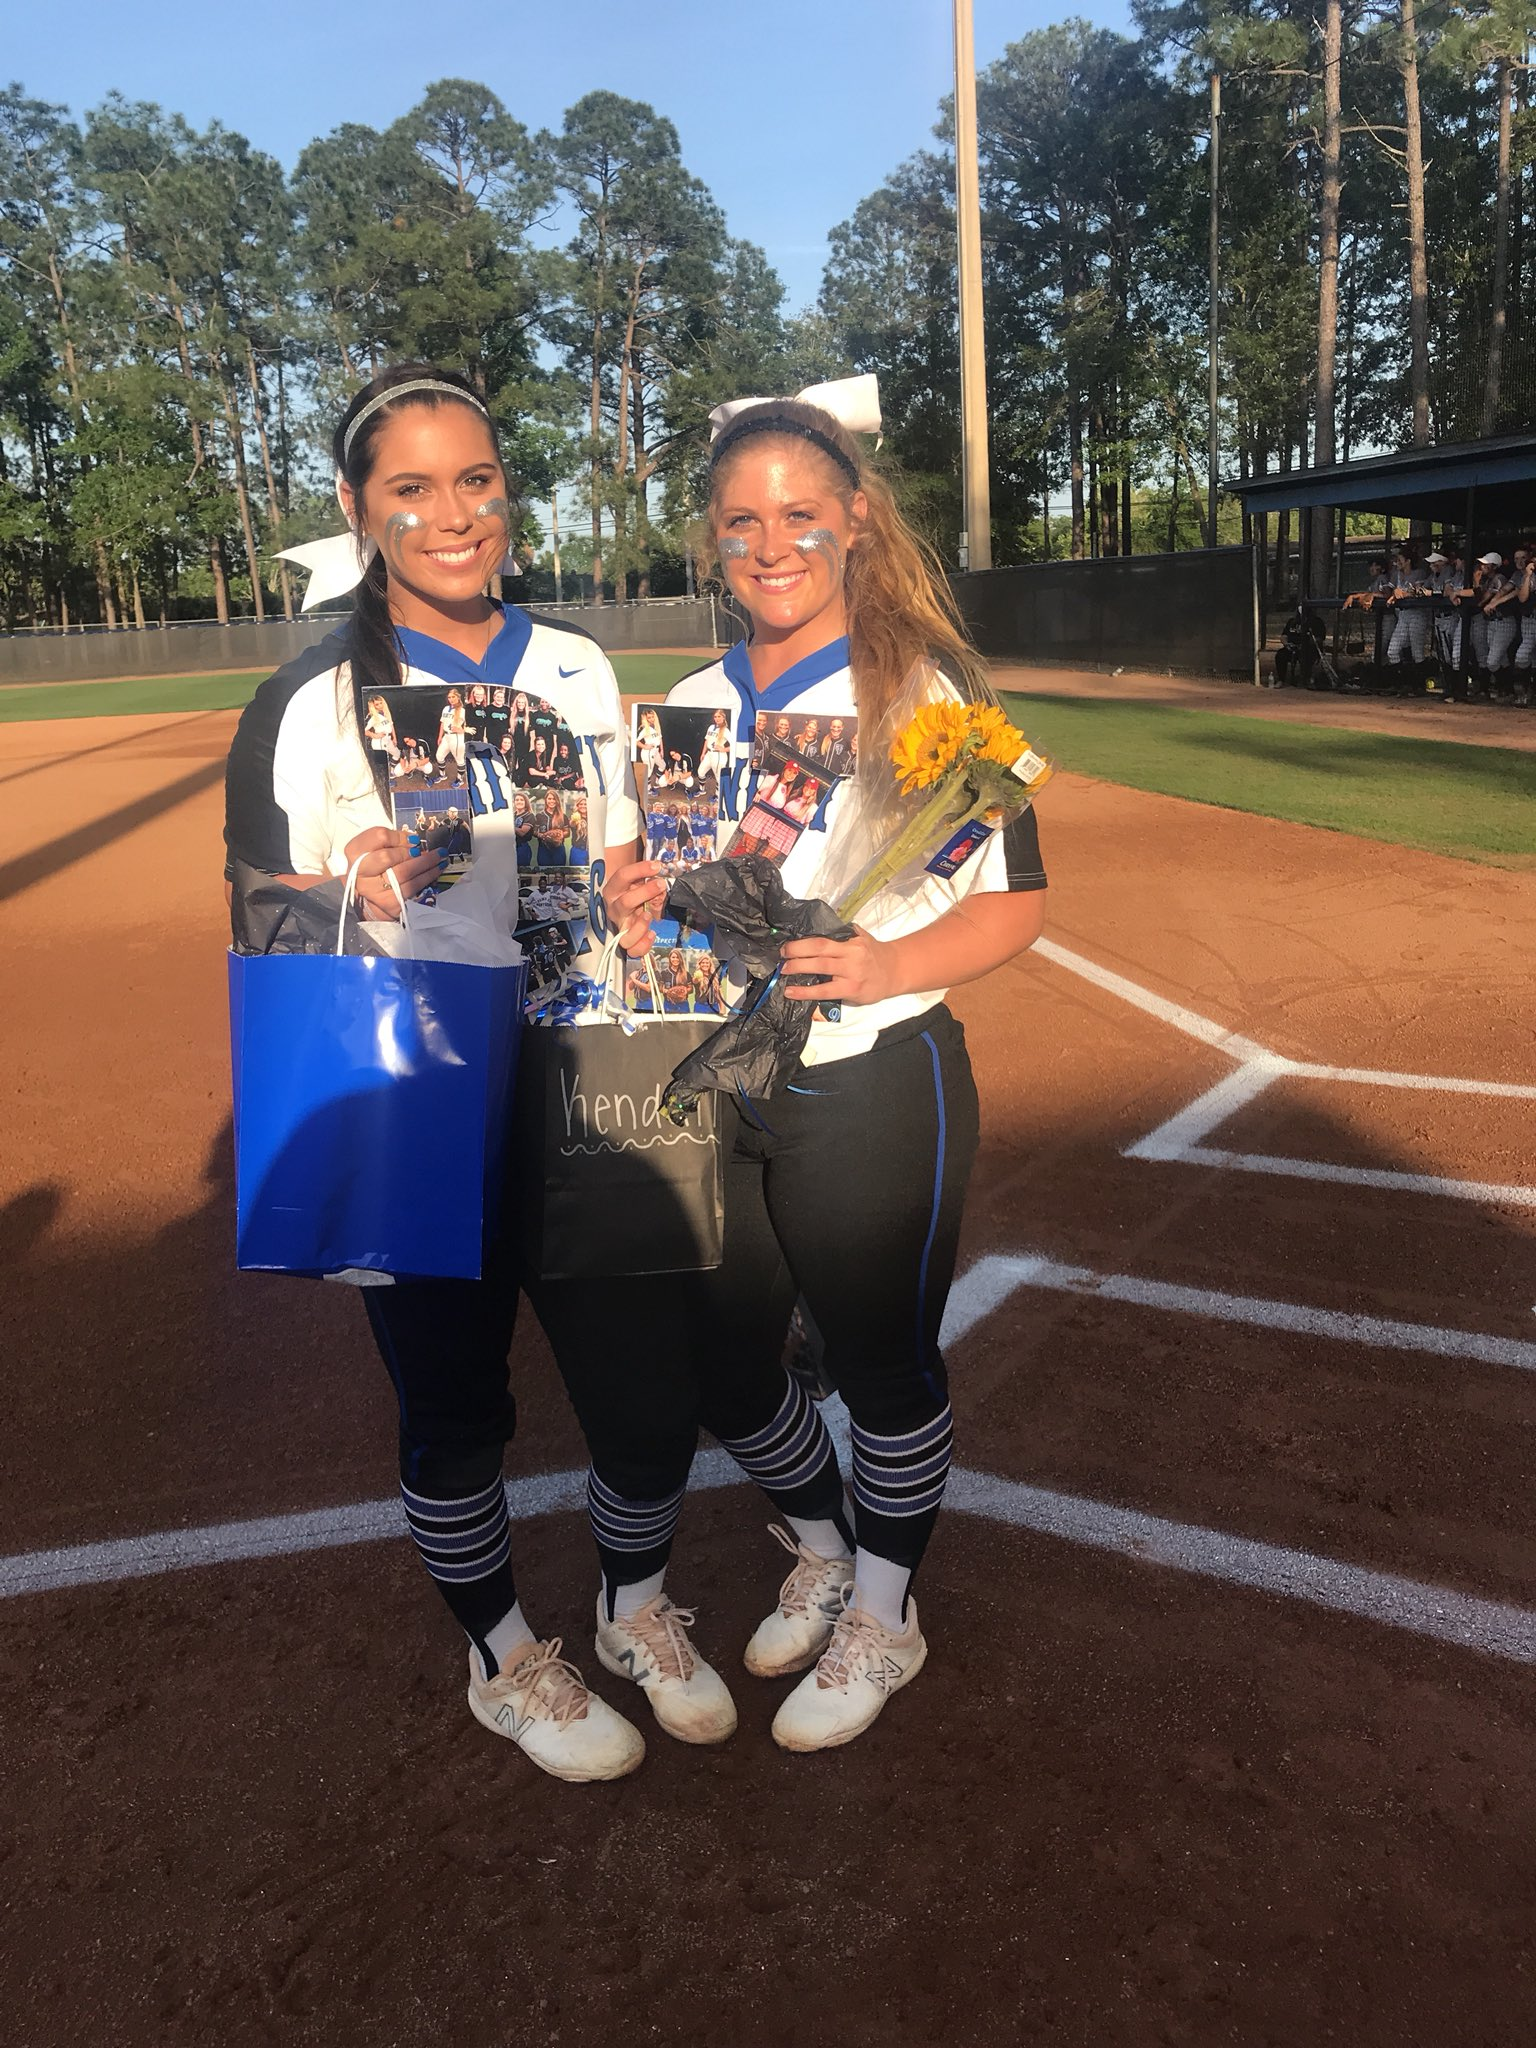 Our Seniors @desiconnell and @KendallLeigh47   We love you!! https://t.co/zAqFvI7v0D